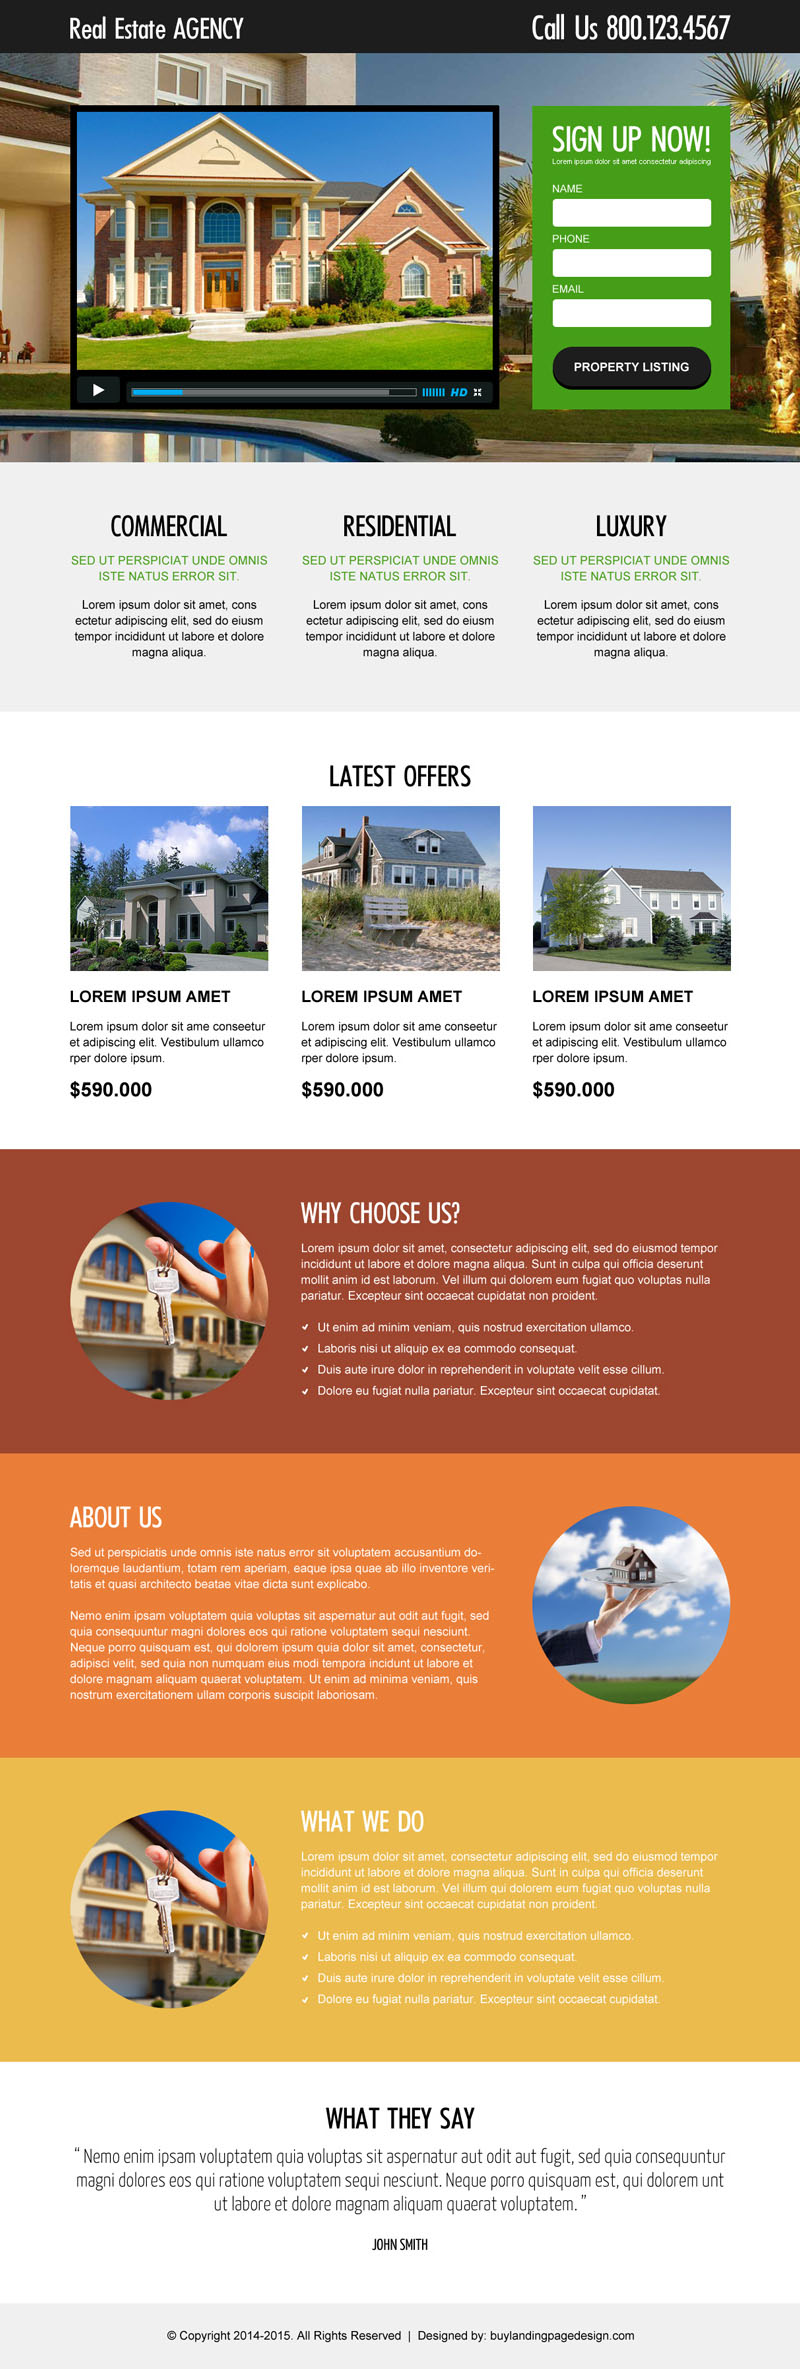 real-estate-lead-capture-converting-video-landing-page-design-template-009